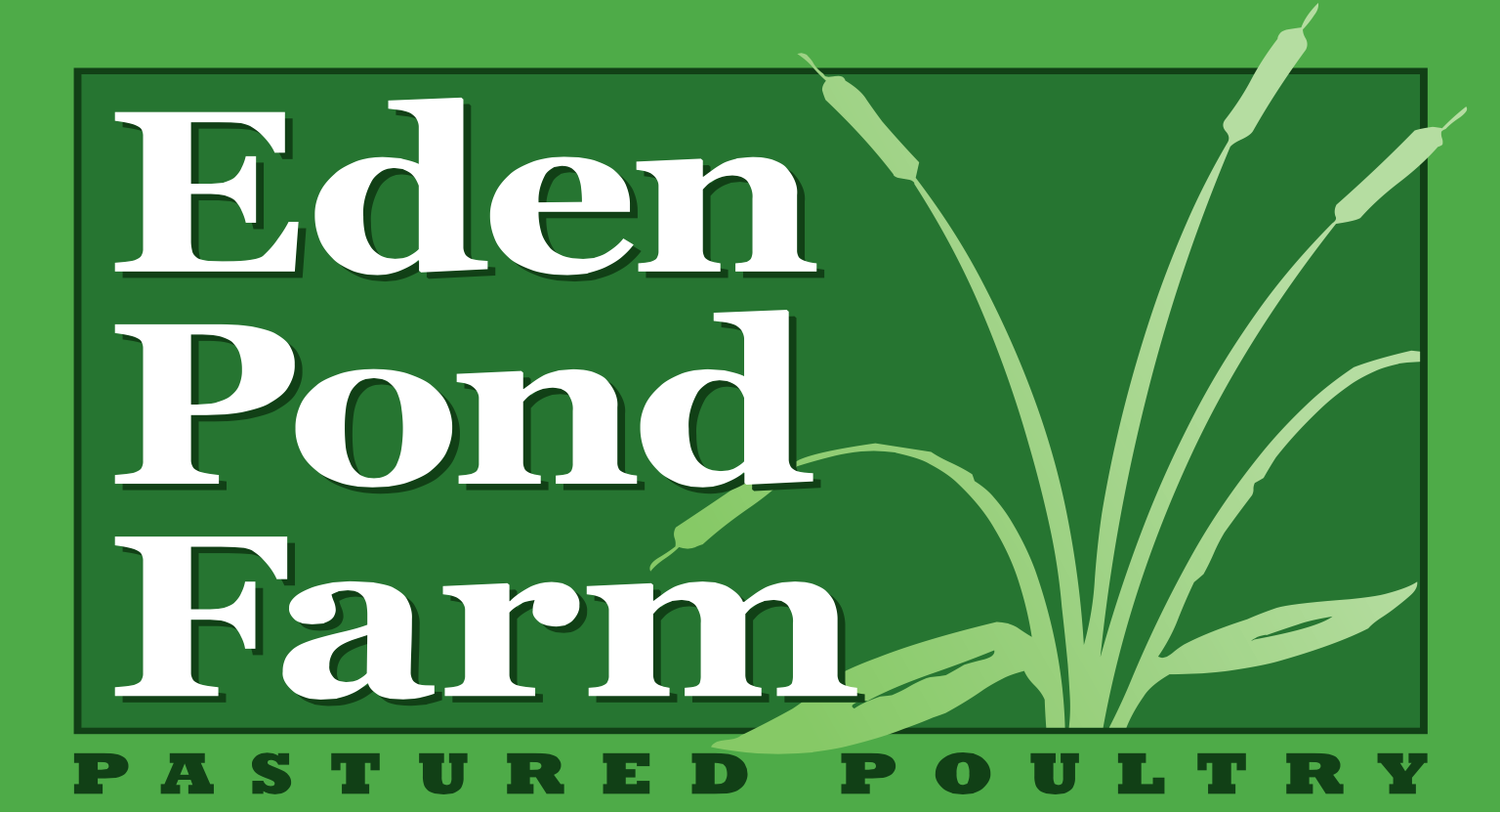 Eden Pond Farm